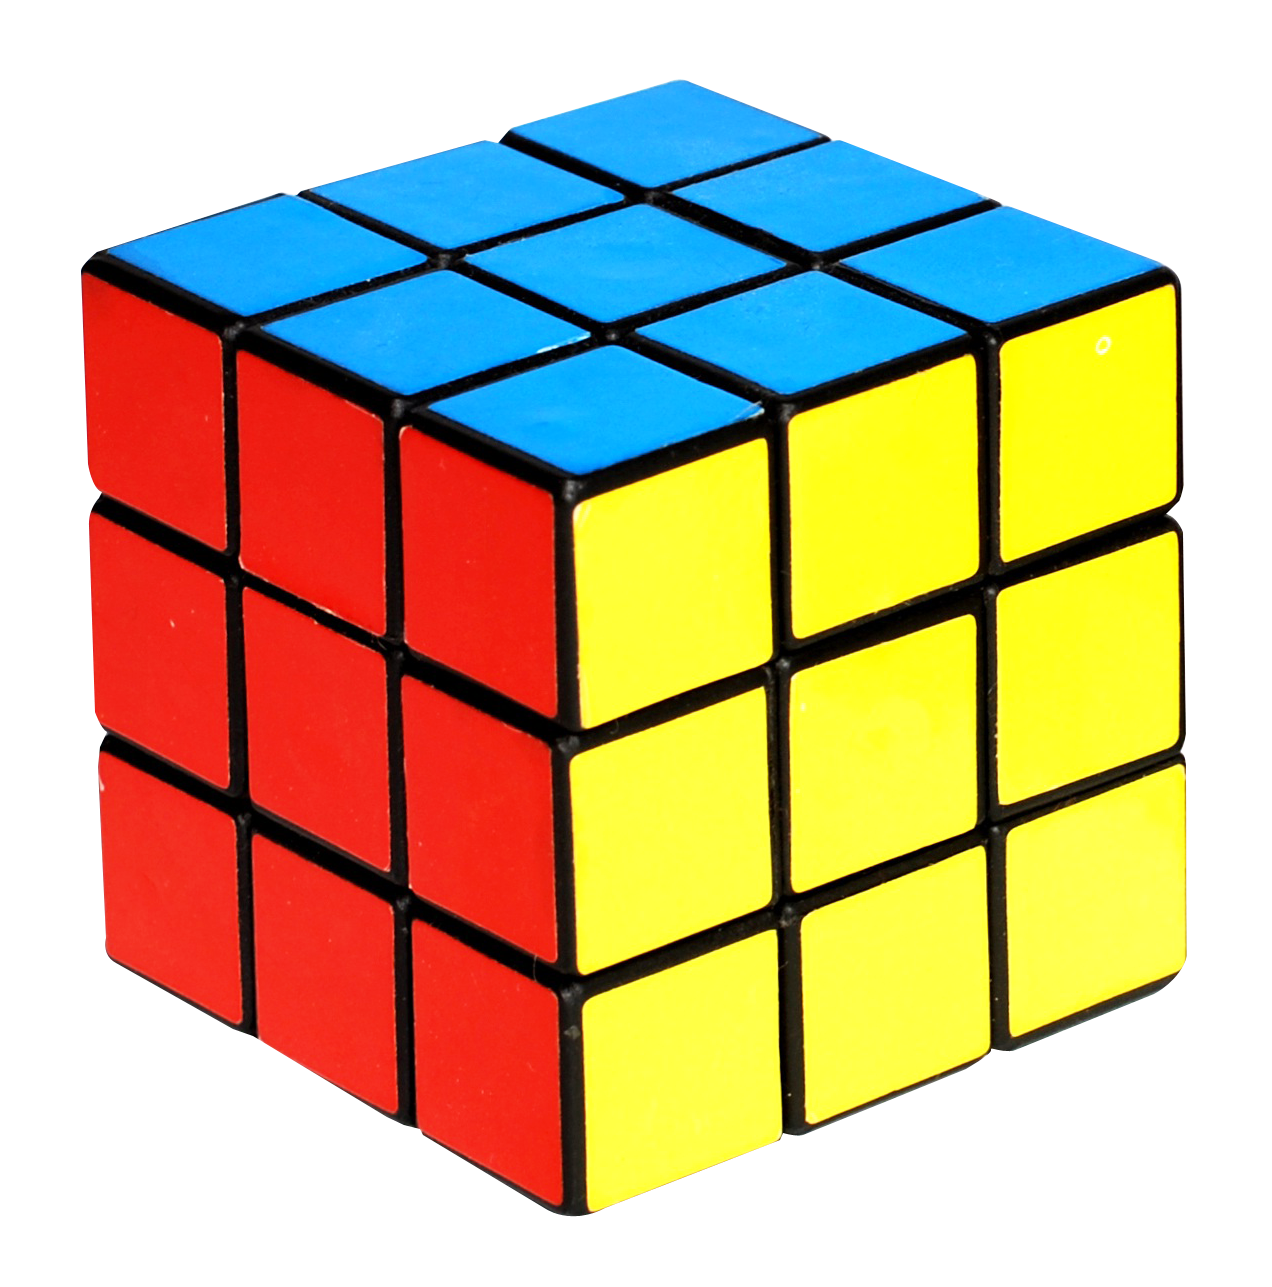 Rubiks Cube Game Image 25687